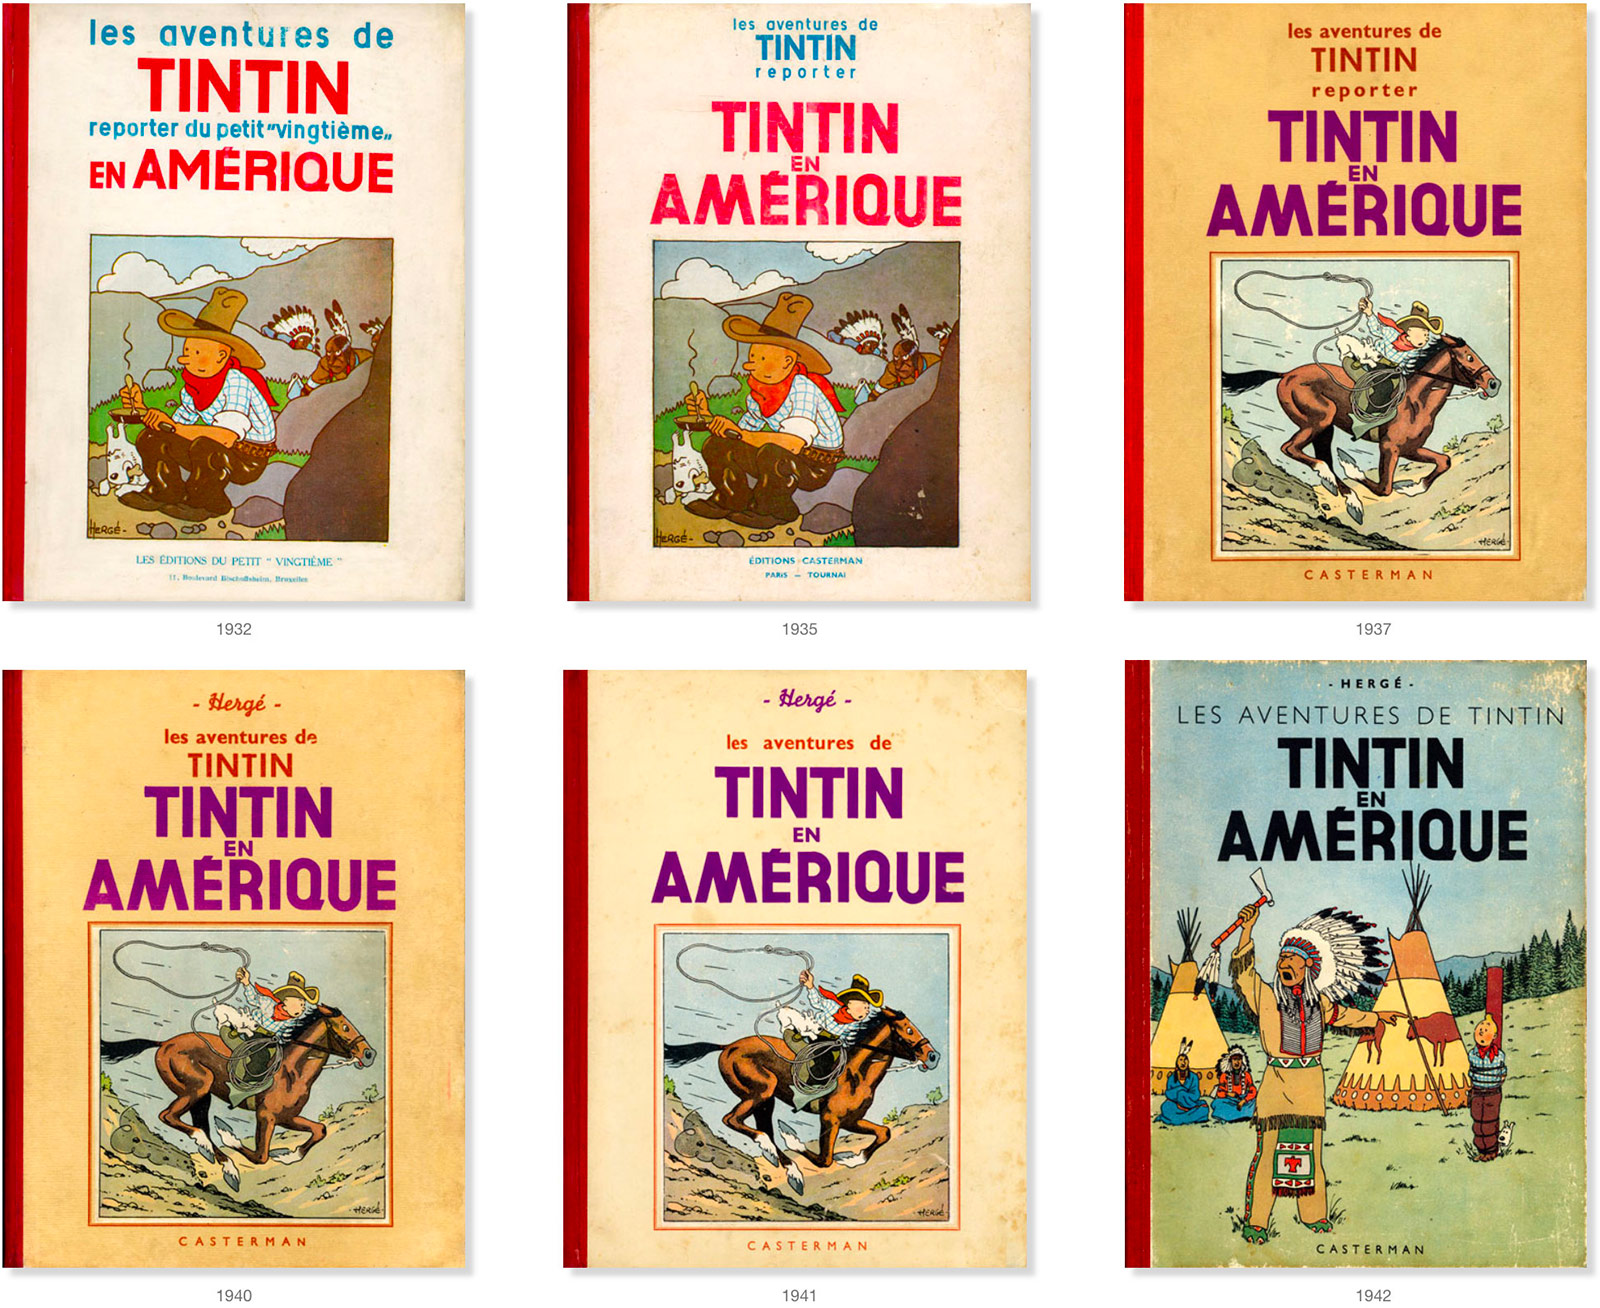 Tintin in America - covers from 1932 to 1942